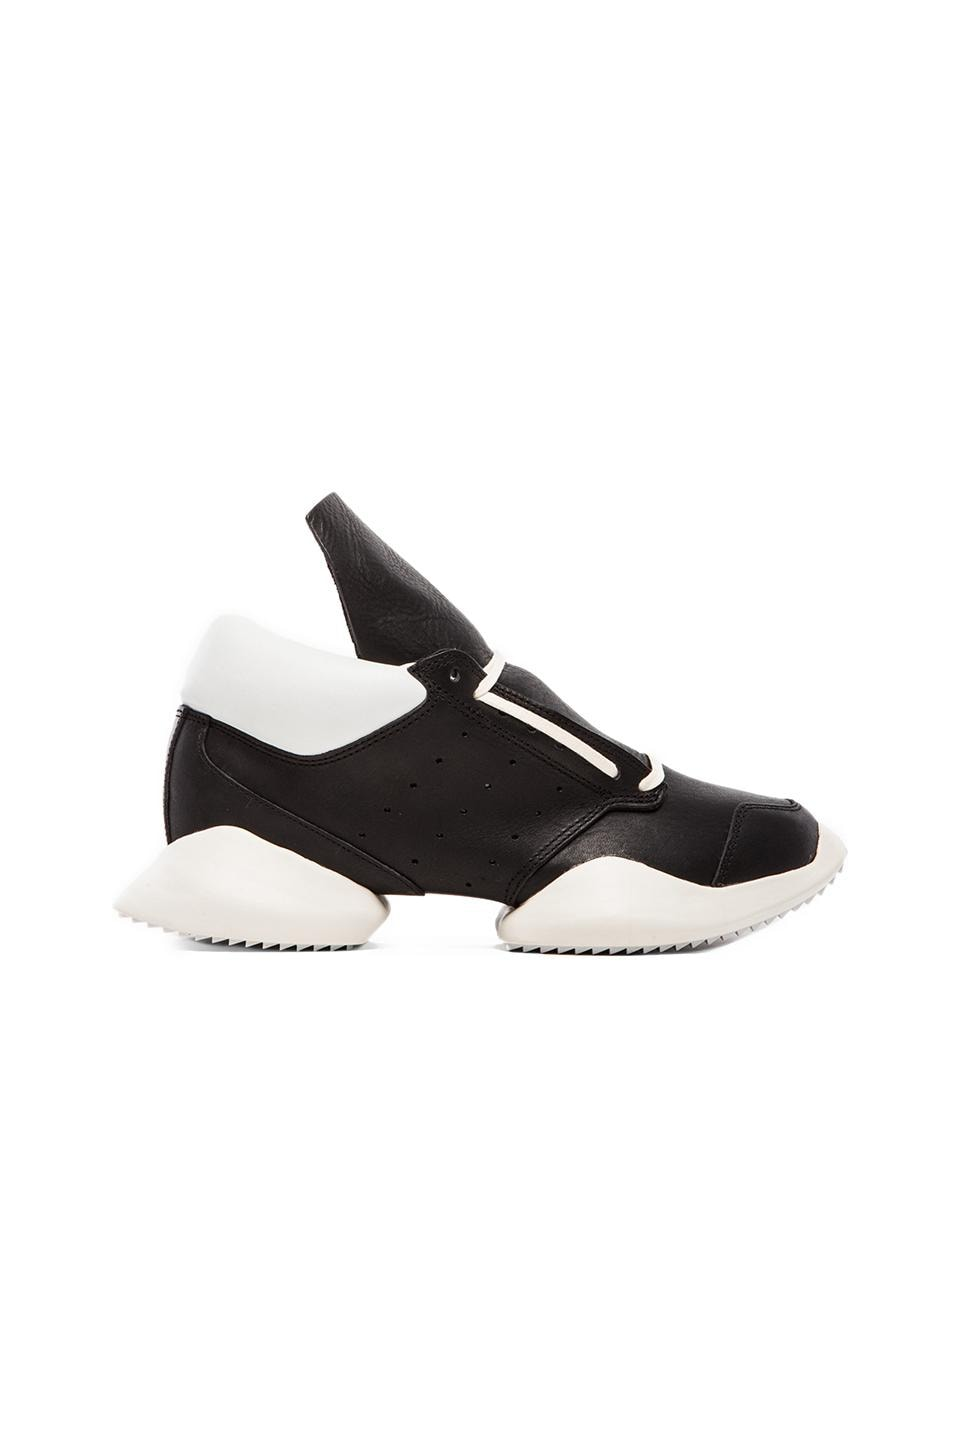 adidas by Rick Owens Runner in Black & White & Bone